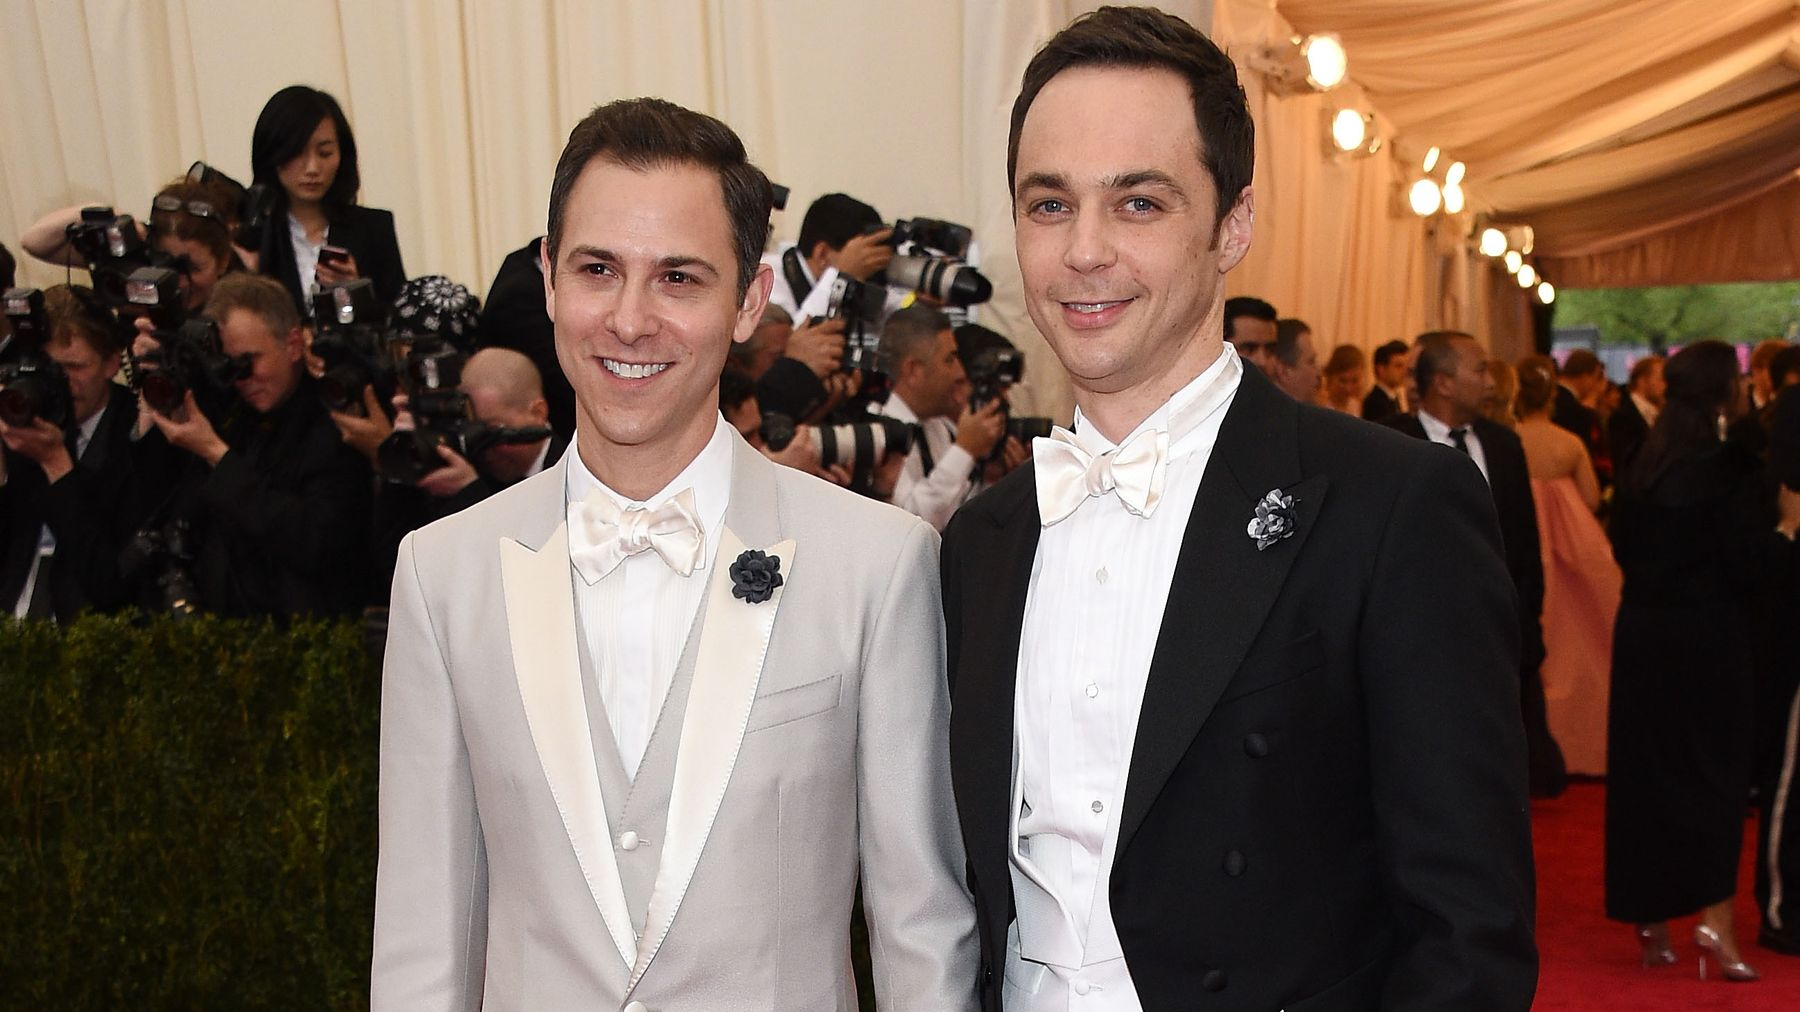 Sheldon And Amy Wedding.Sheldon From The Big Bang Theory Just Got Married Irl And He Looks